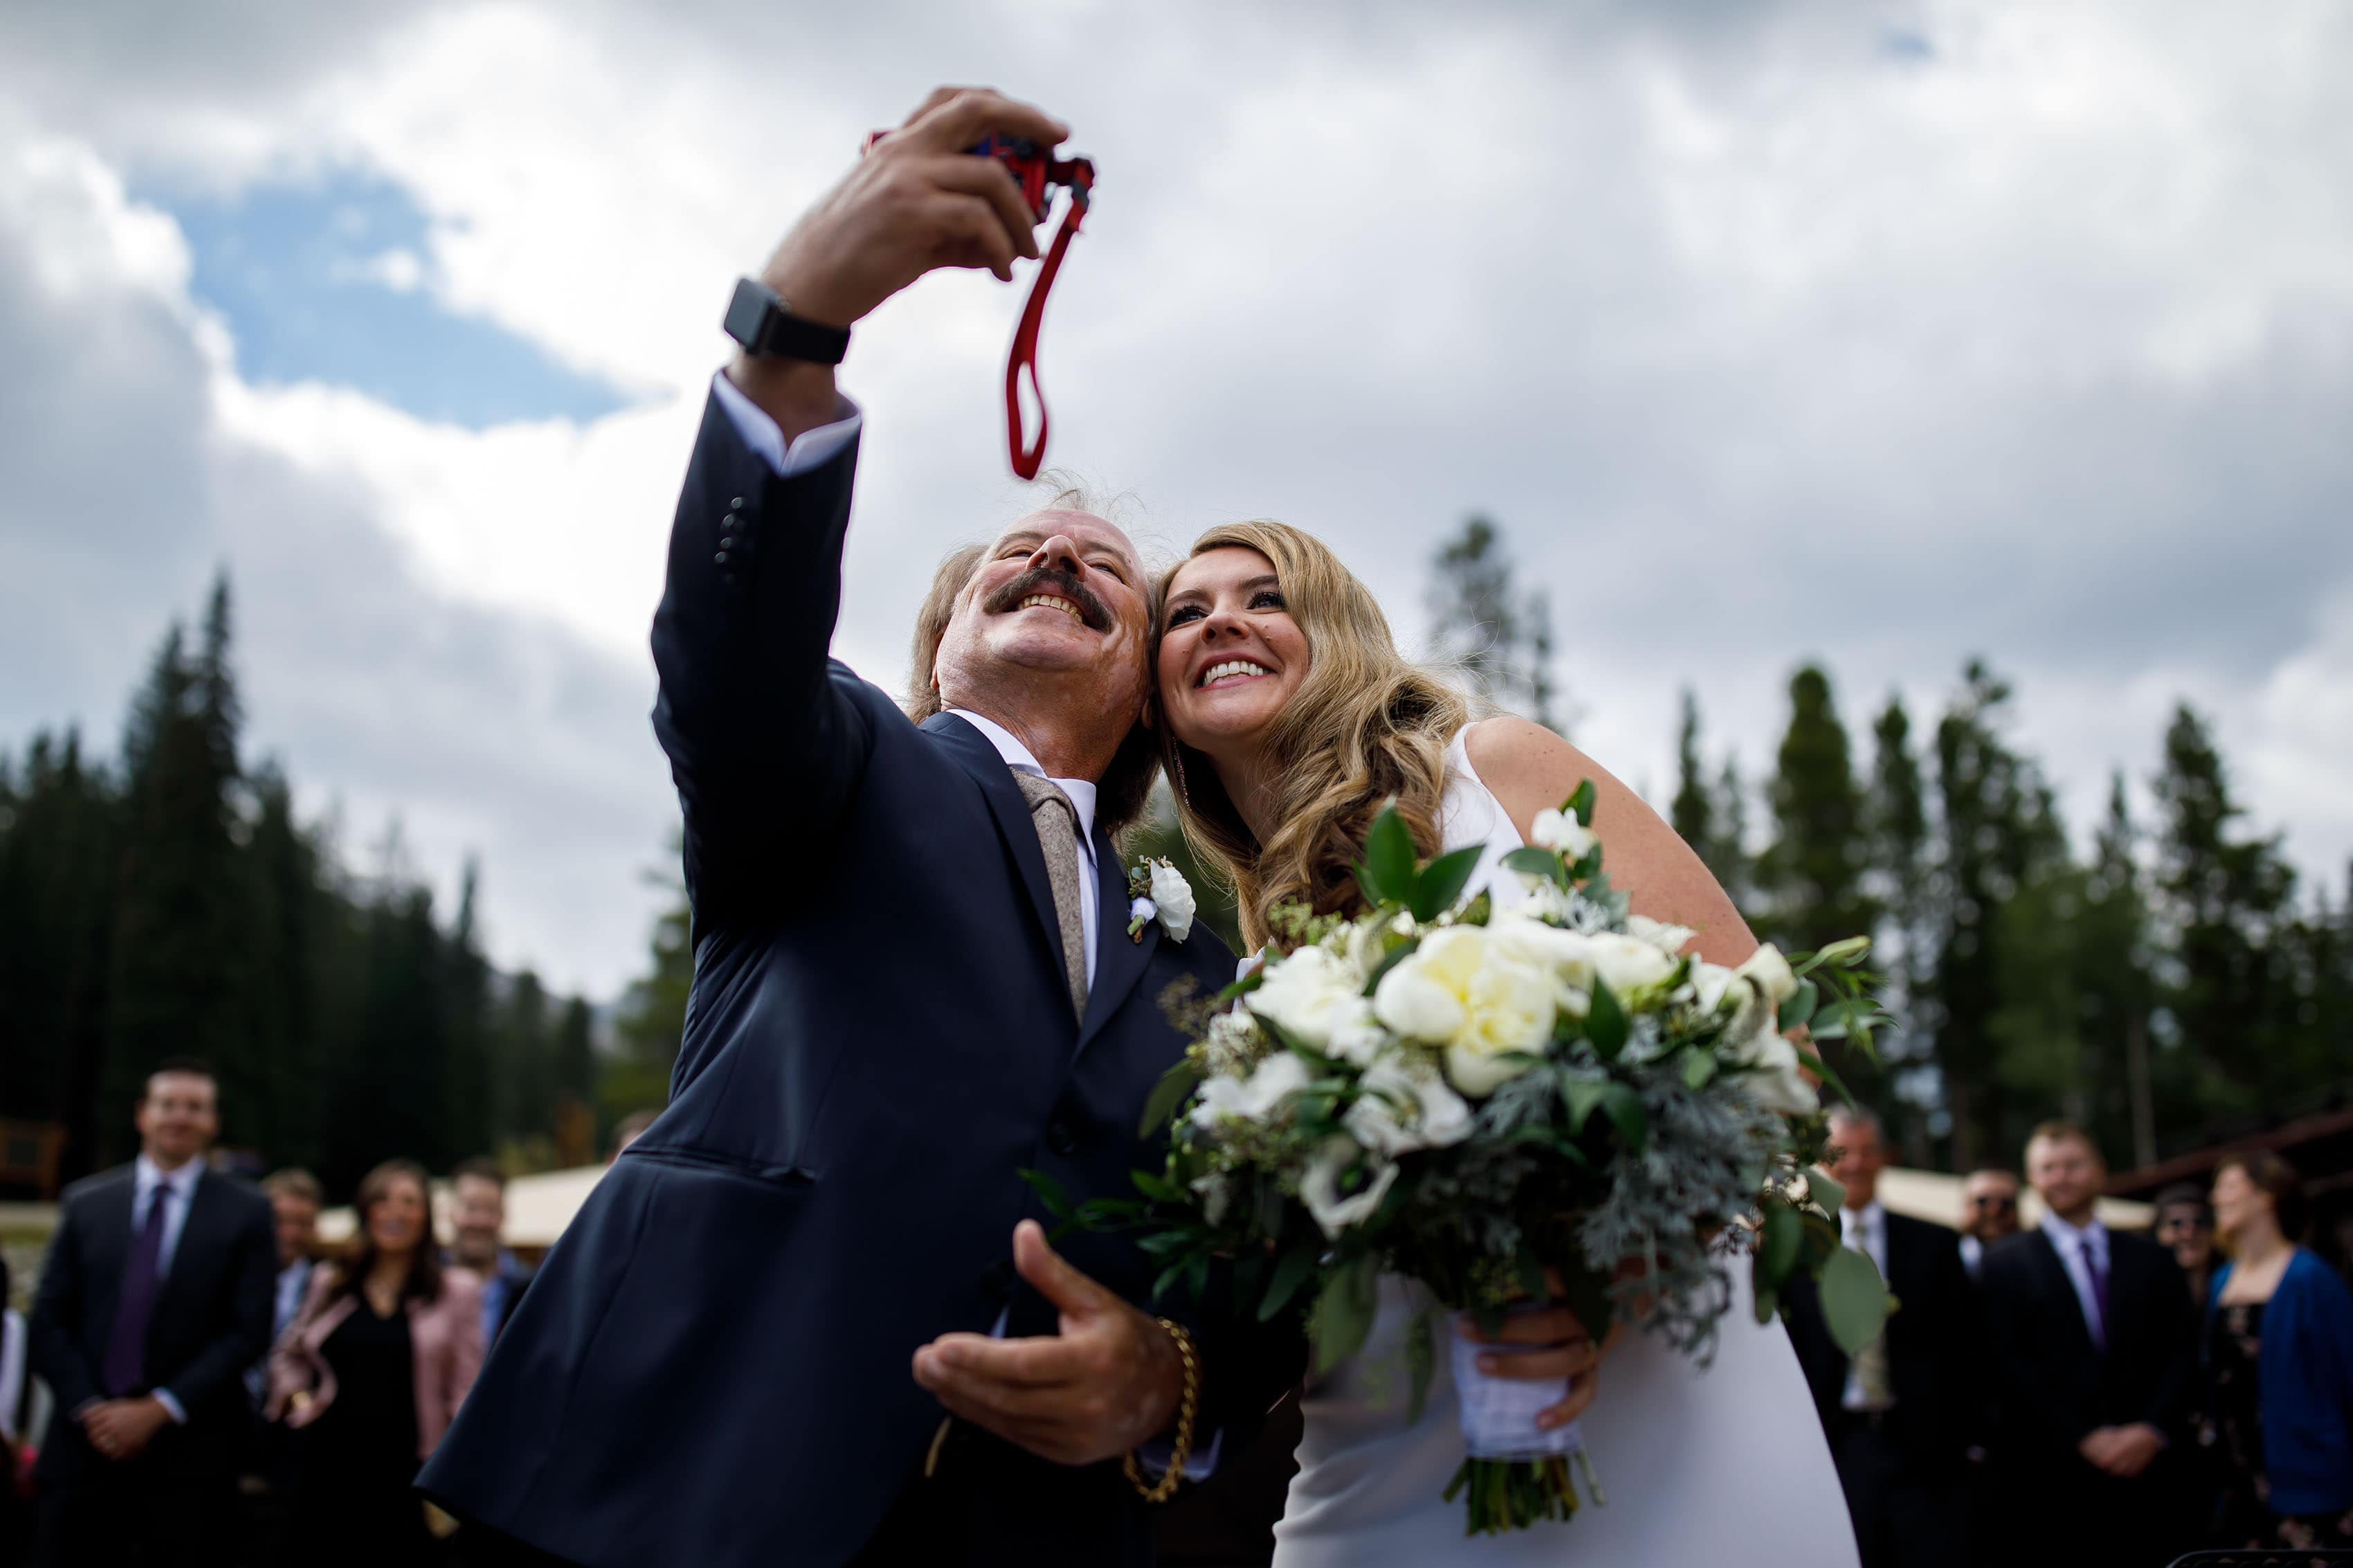 the bride takes a selfie with her father